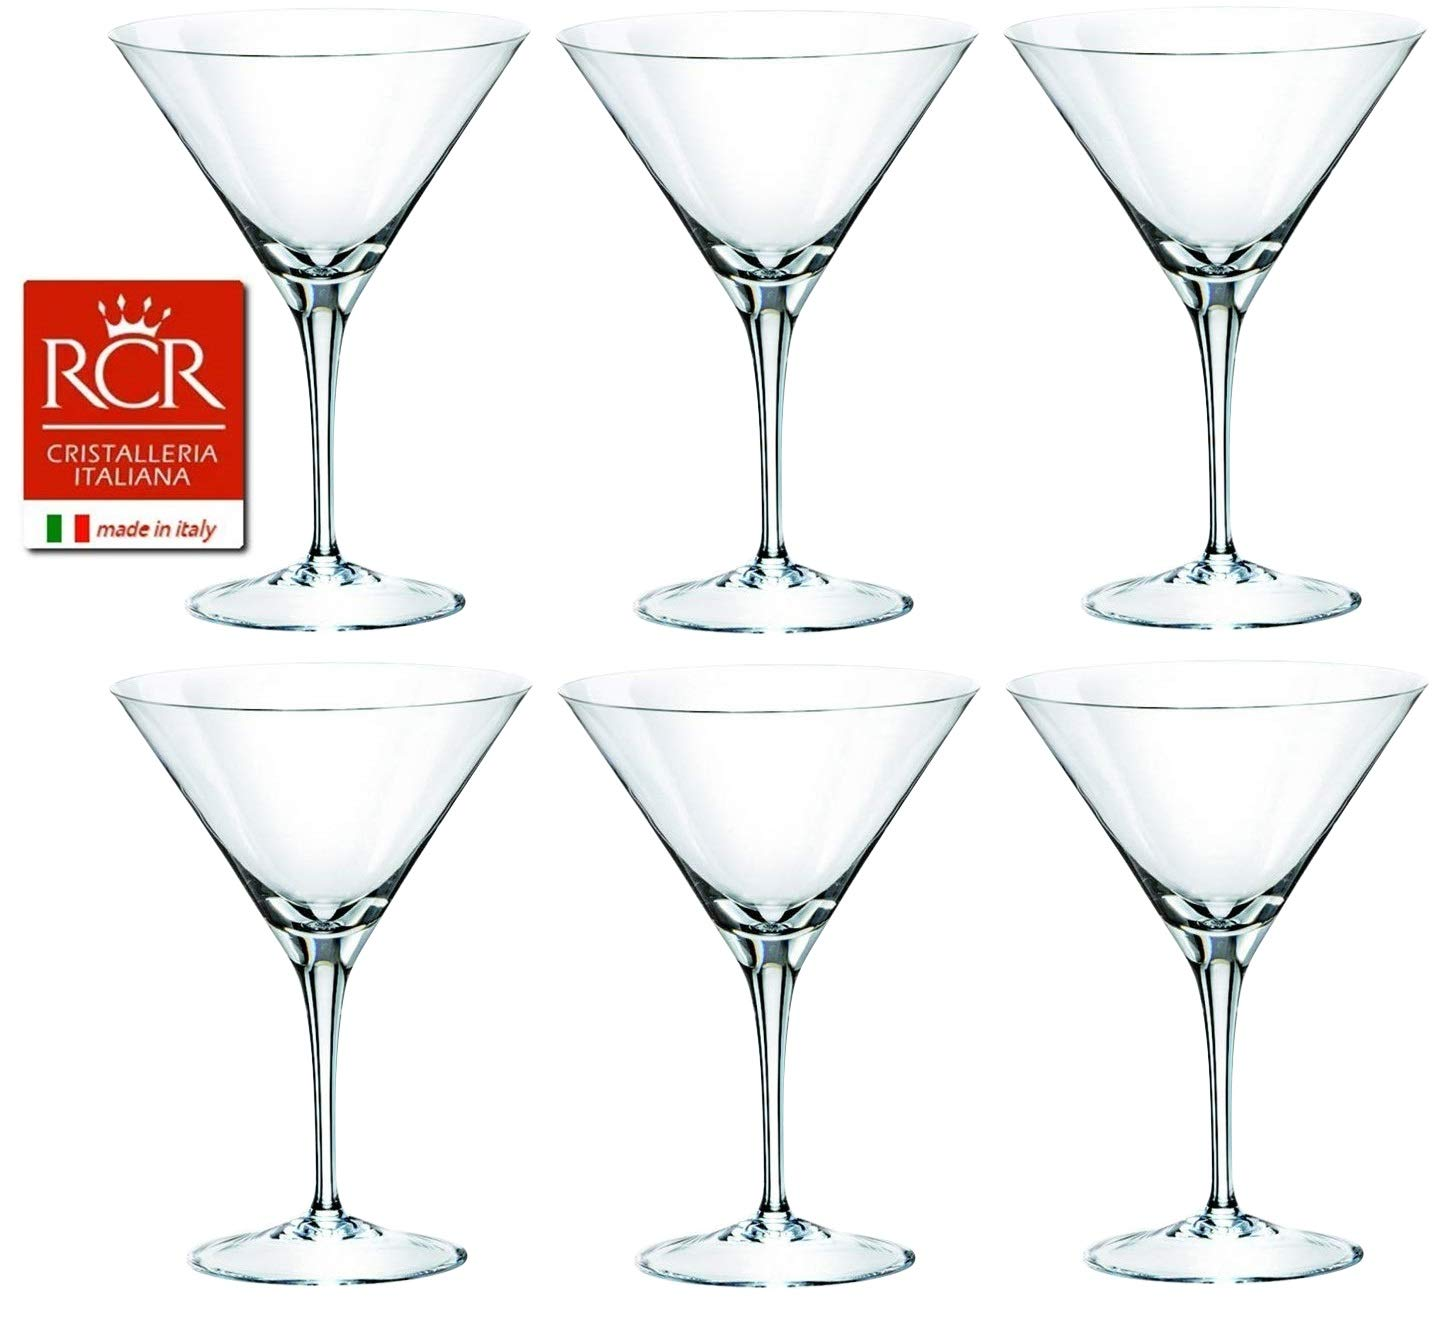 RCR Cristalleria Italiana Invino Crystal Glass Drinkware Set (Martini [12 oz.]) by RCR Cristalleria Italiana (Image #1)